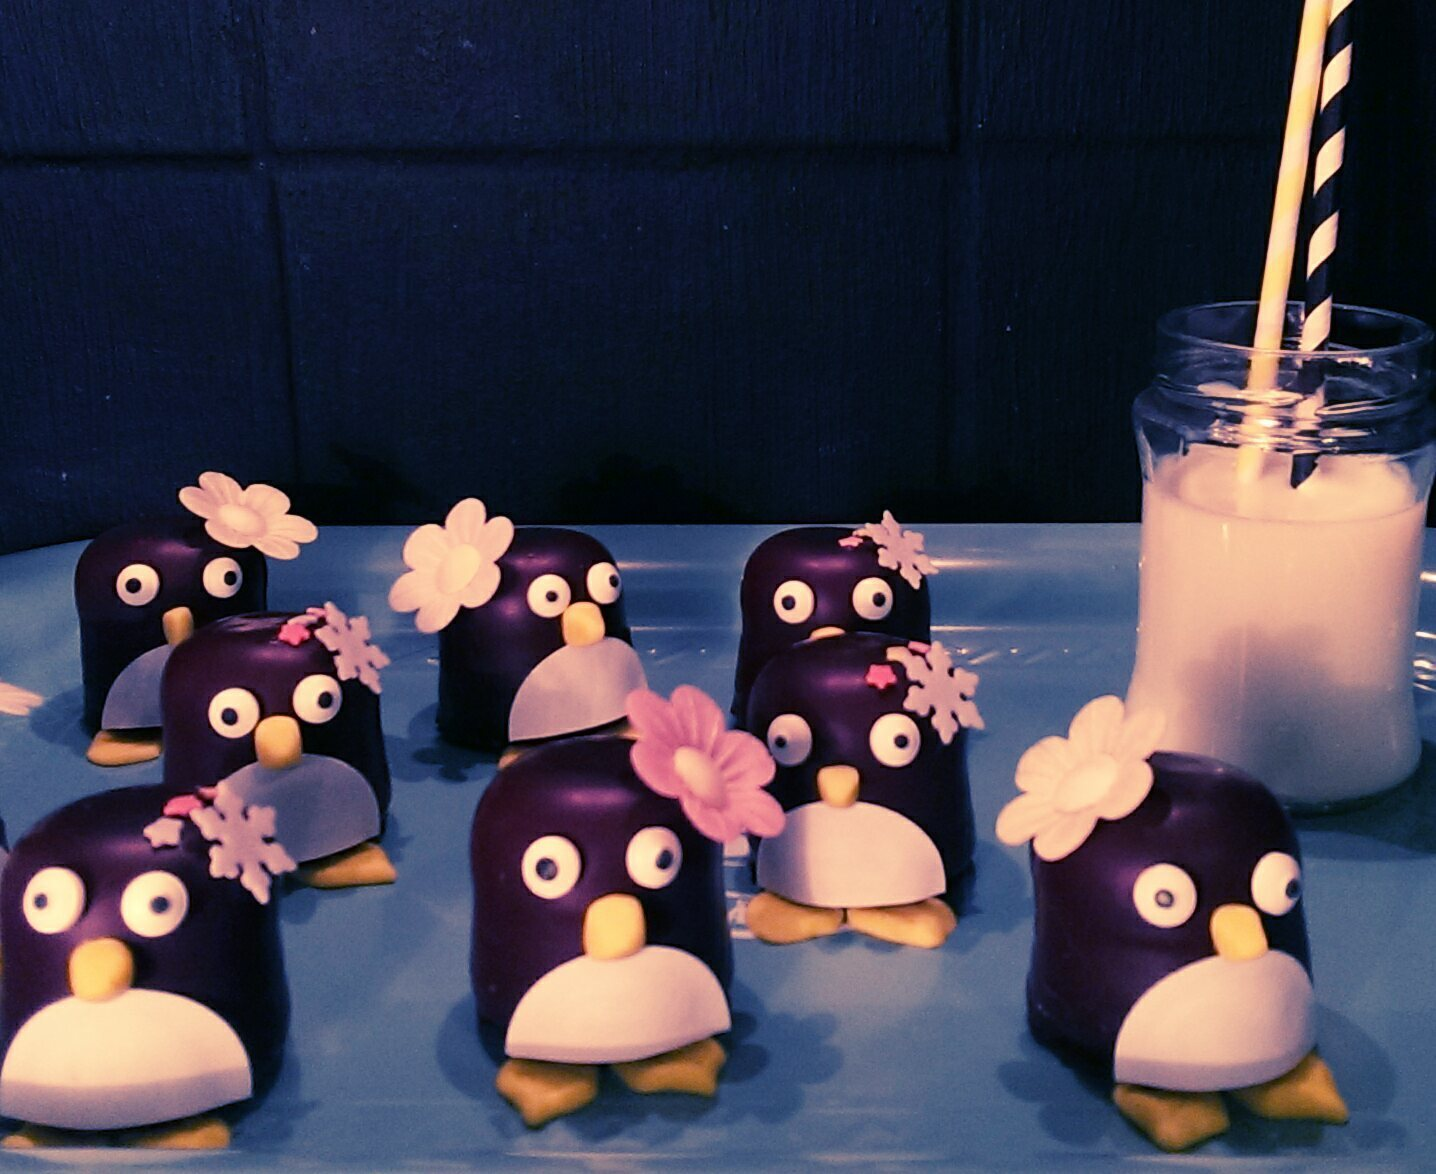 I'm in pingulicious love {Schokopinguine}